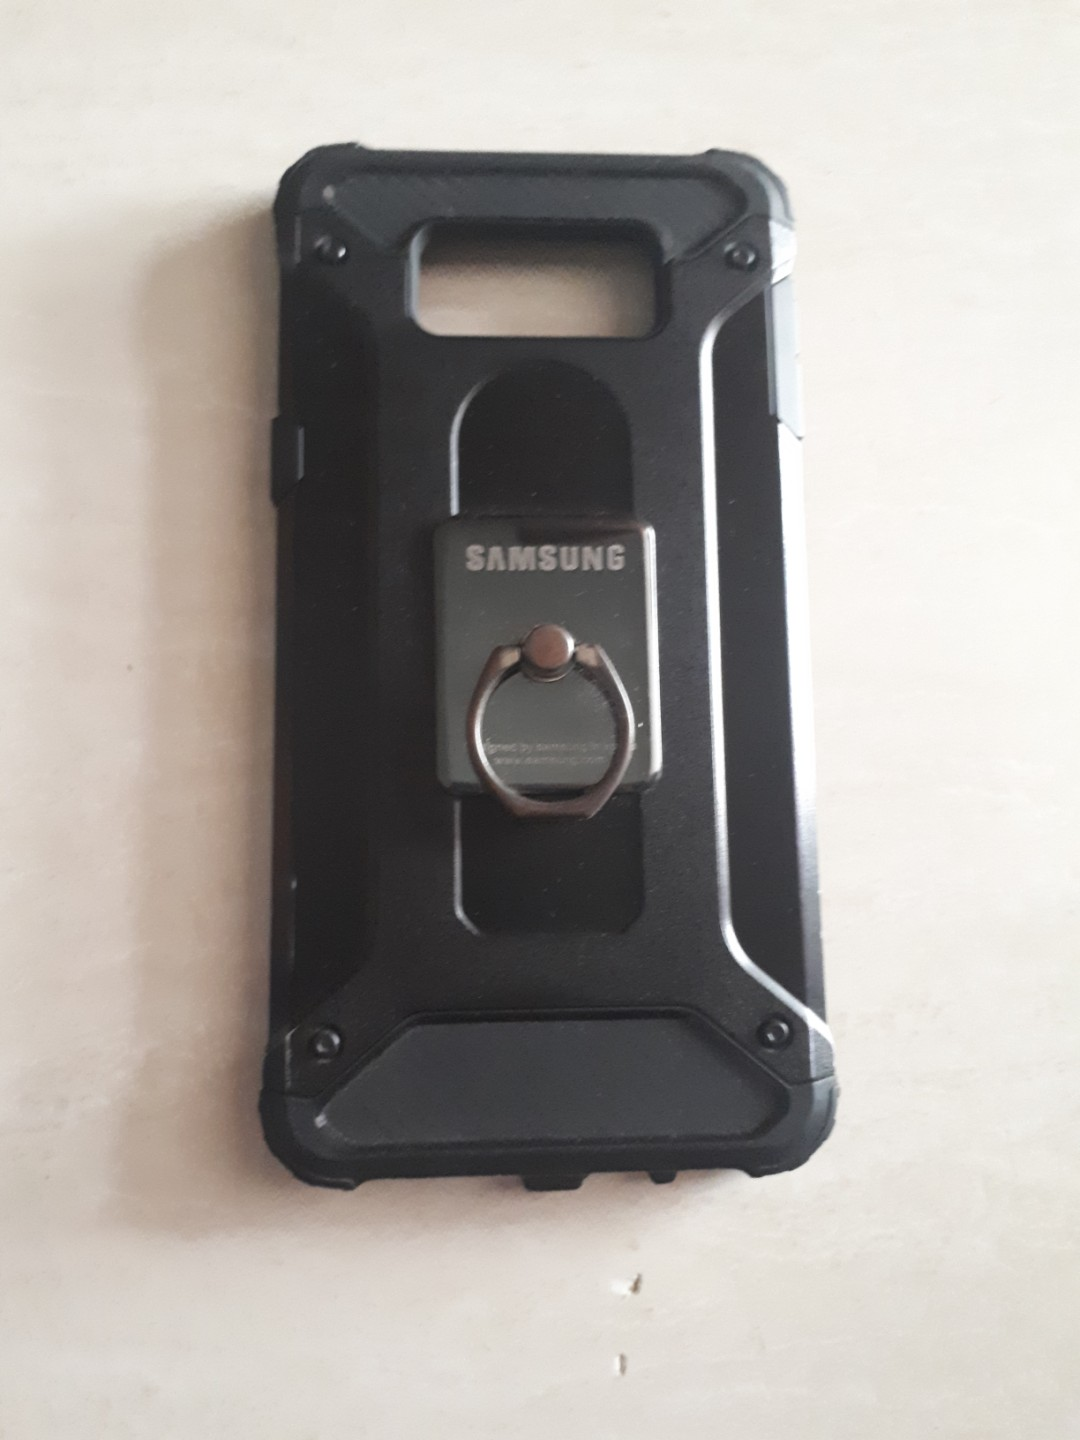 on sale c5a89 9ee01 #carougrab Spigen armor case for samsung galaxy a9 pro